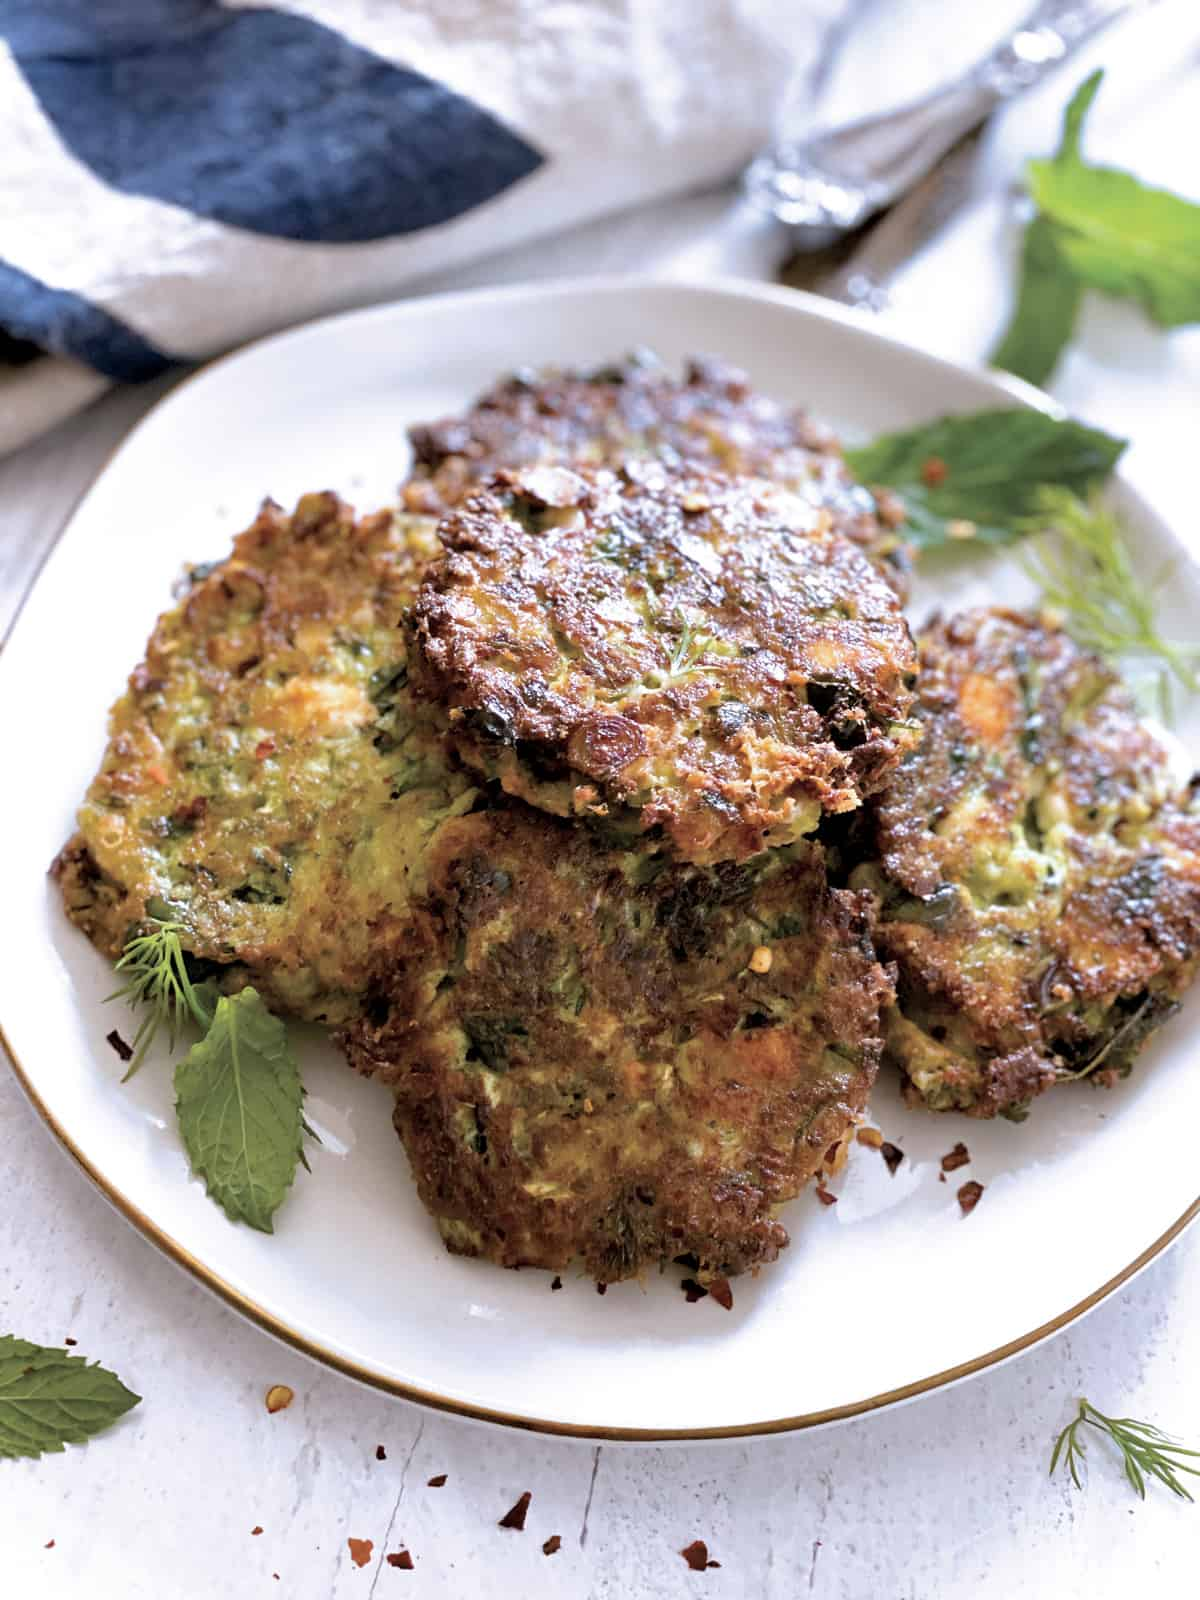 A plate with zucchini patties, utensils and a cloth napkin at the back.